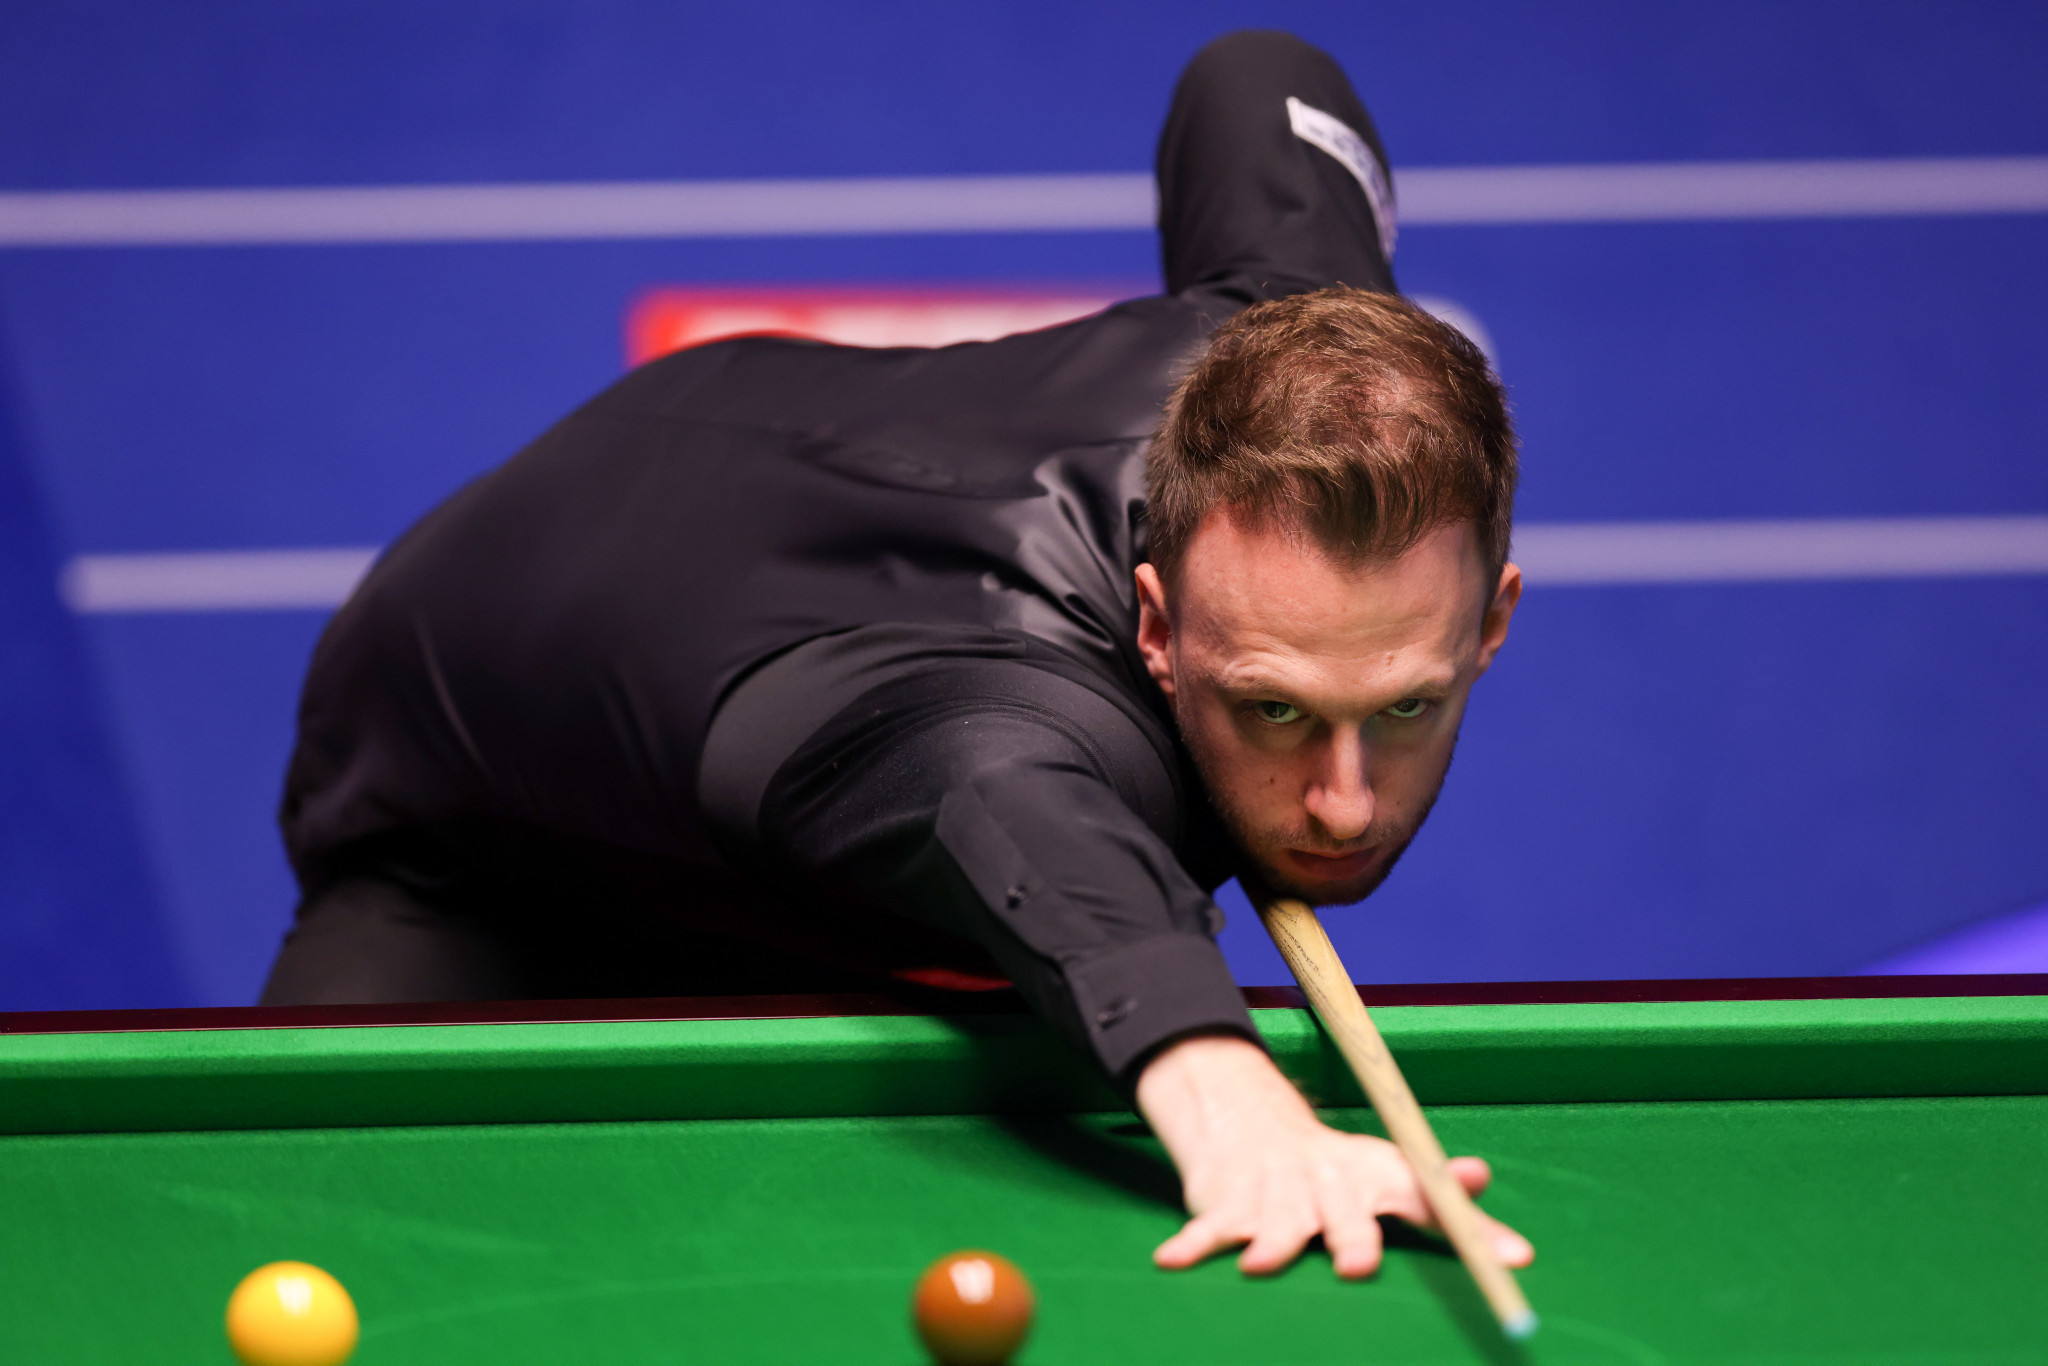 World number one Judd Trump reached round two of the World Snooker Championship after a comfortable win over Liam Highfield ©Getty Images